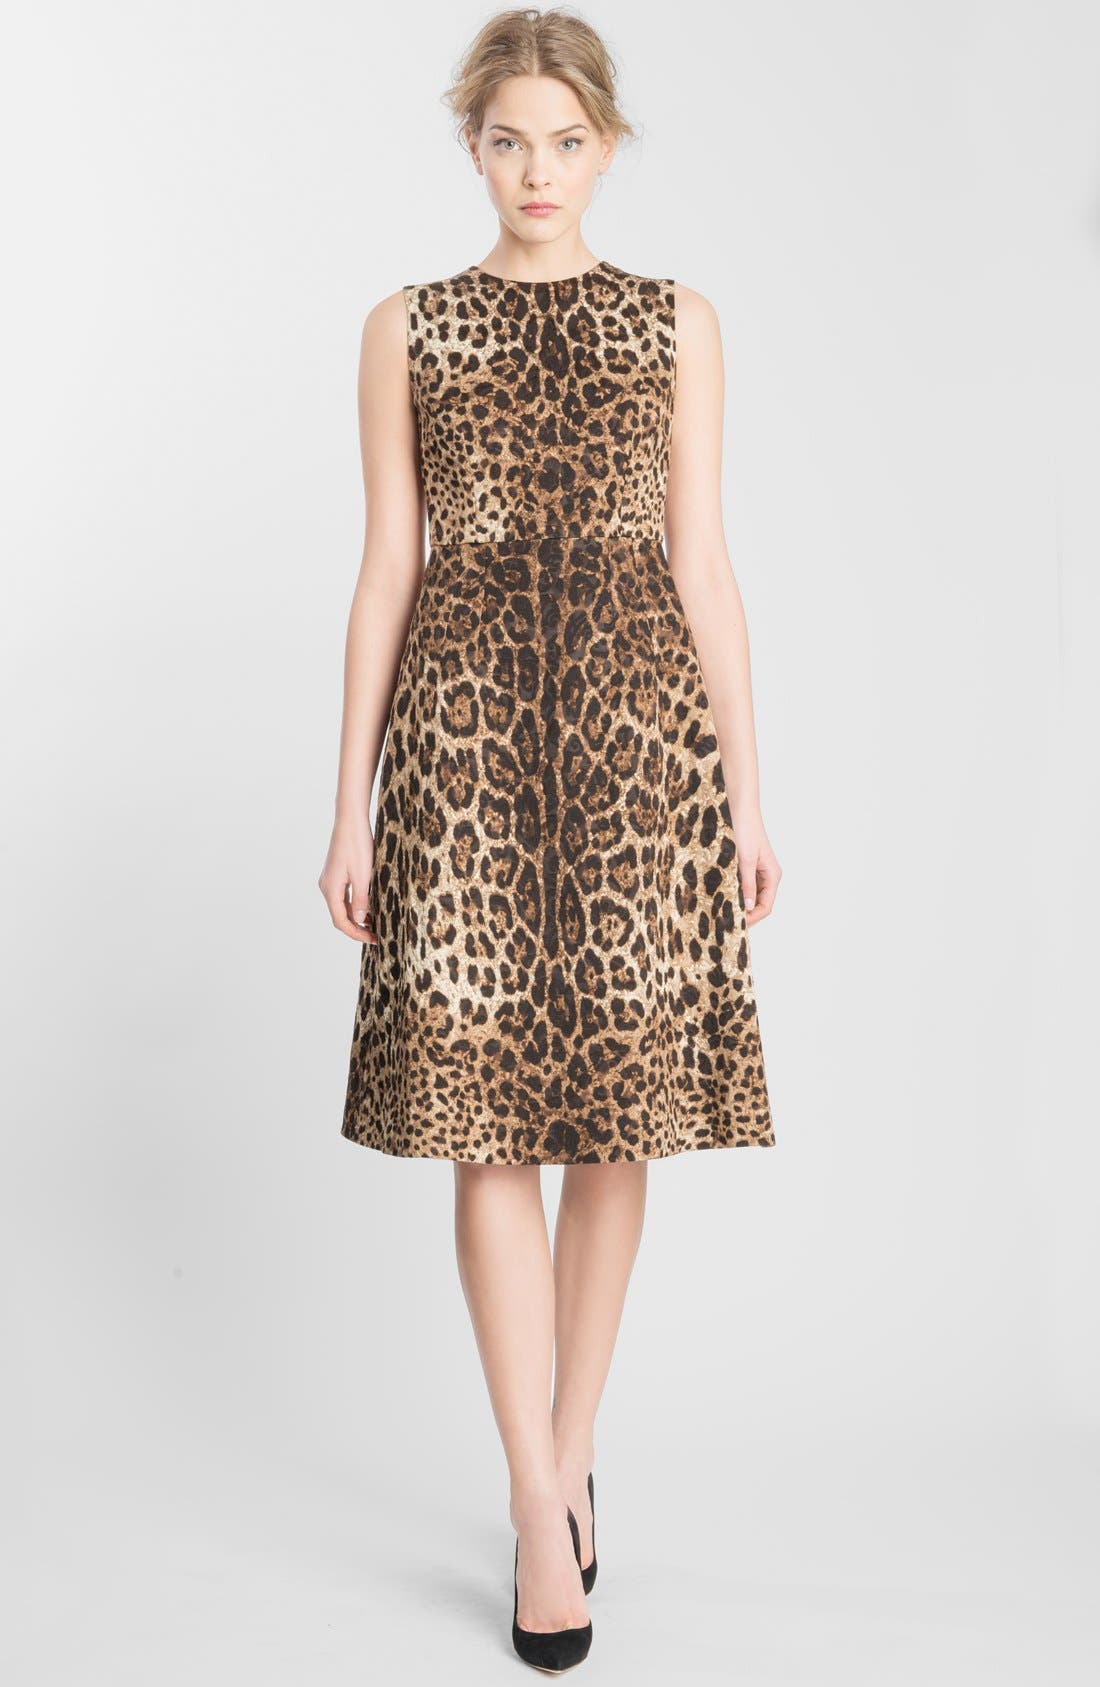 Alternate Image 1 Selected - Dolce&Gabbana Leopard Print Fit & Flare Dress